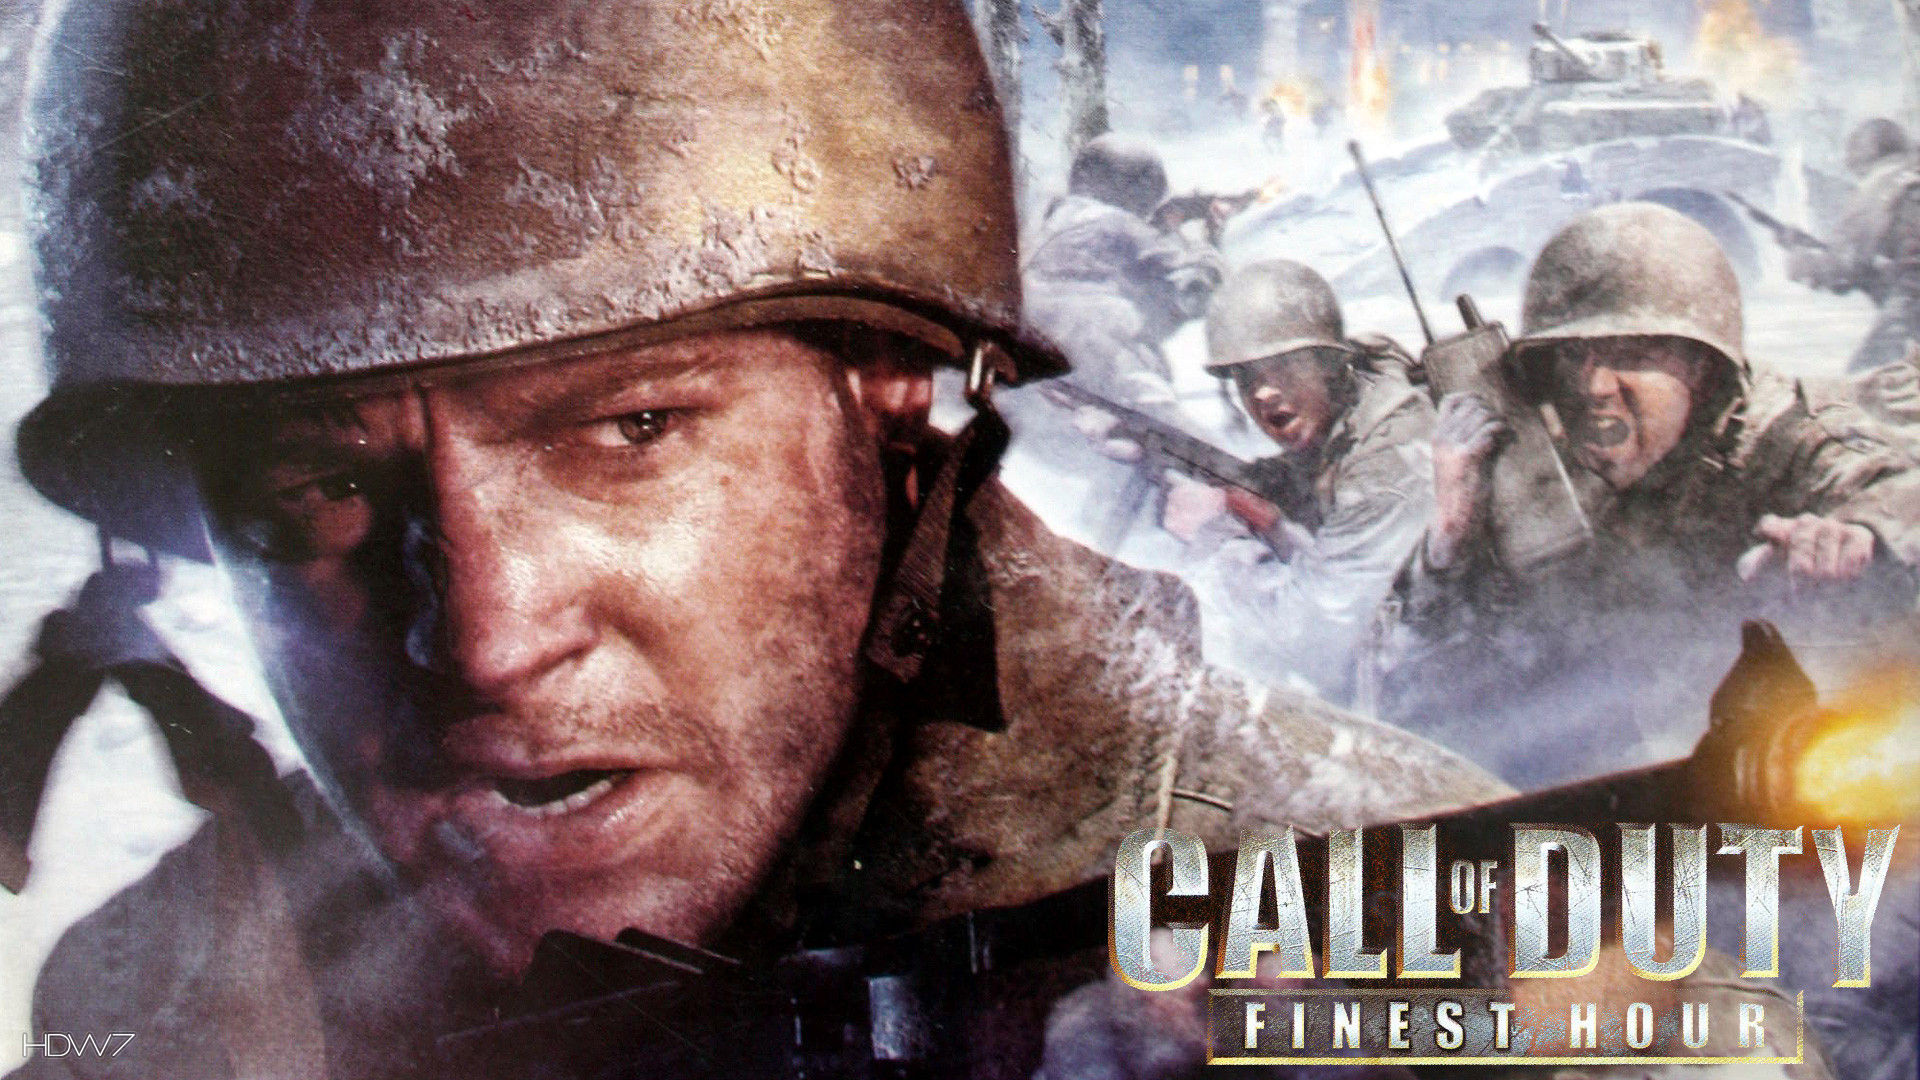 Call Of Duty Finest Hour Game Hd Wallpaper Gallery 274